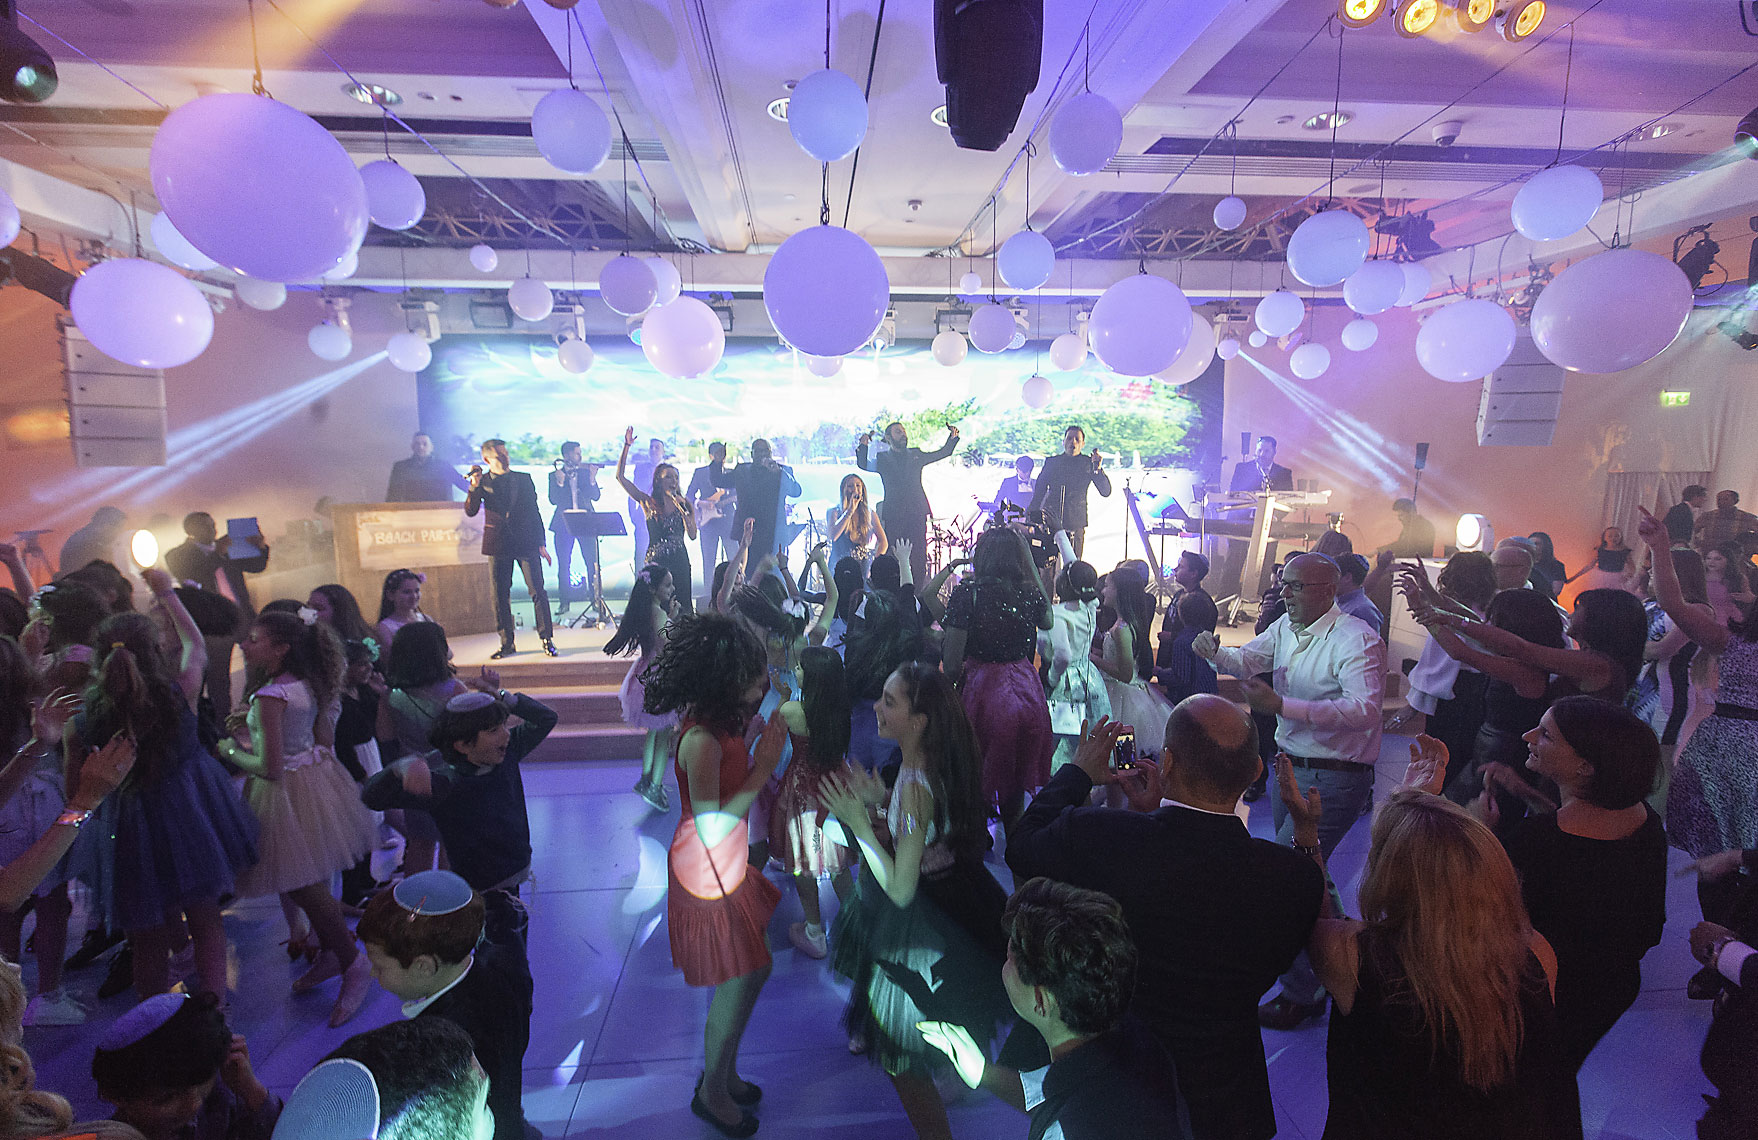 Bat mitzvah  taking place in large ballroom with dancing guests in London hotel